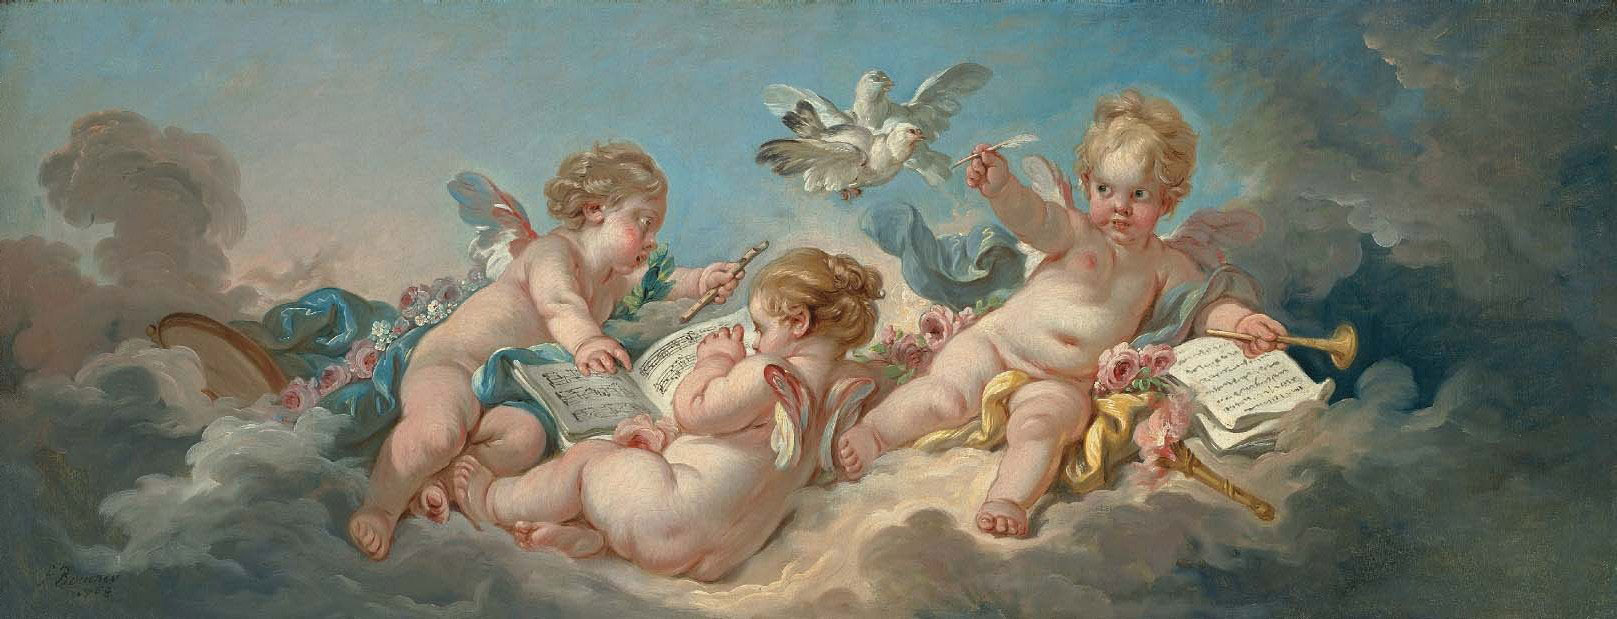 Putti making music